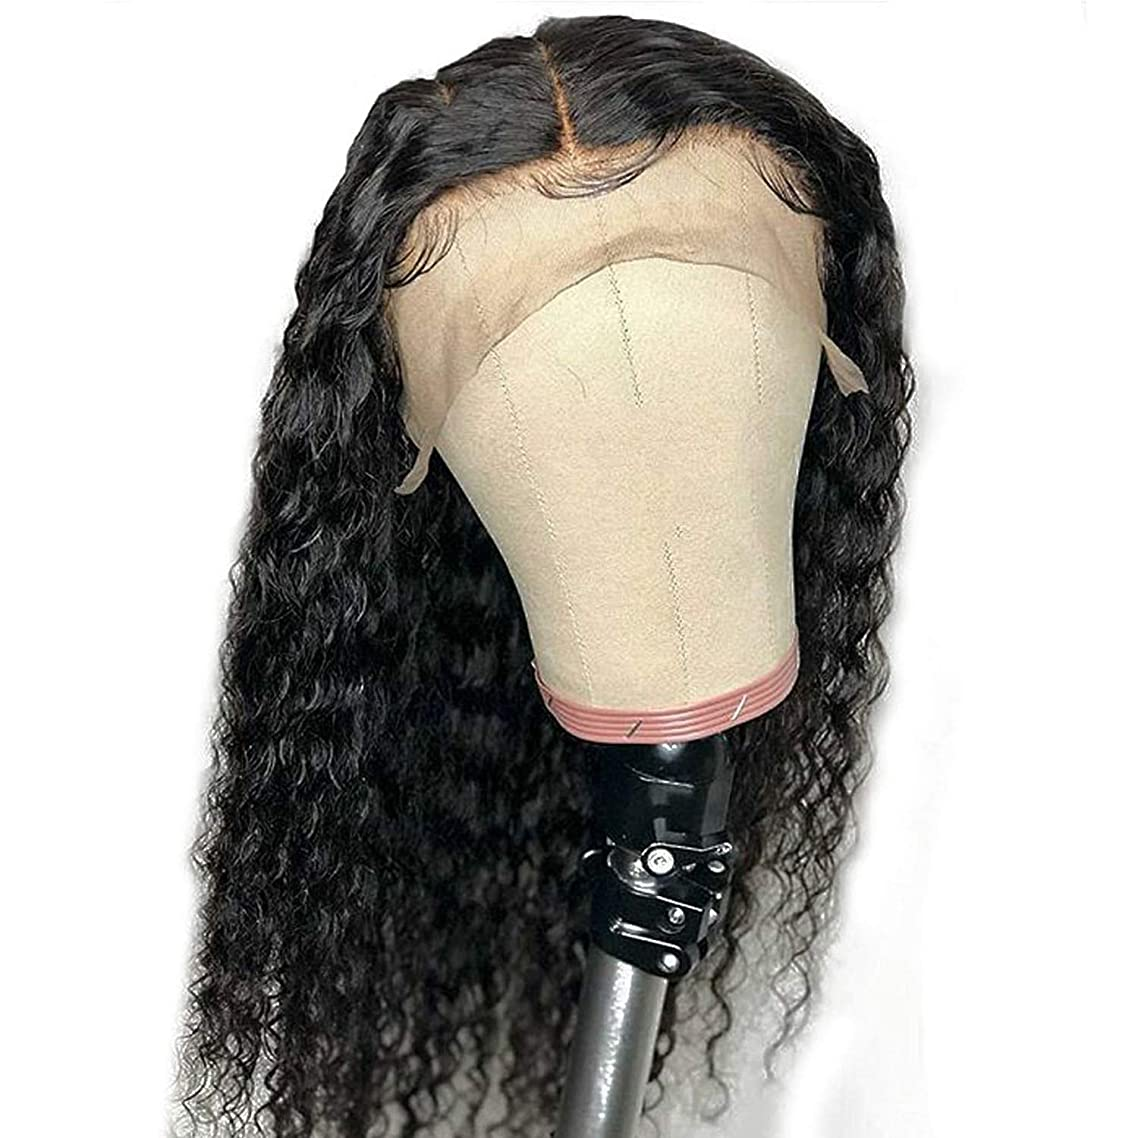 Curly 360 Lace Frontal Wig PrePlucked 136 Deep Part 180% Brazilian Remy Lace Front Human Hair Closure Wigs For Black Women,18inches,360 Lace Frontal Wig